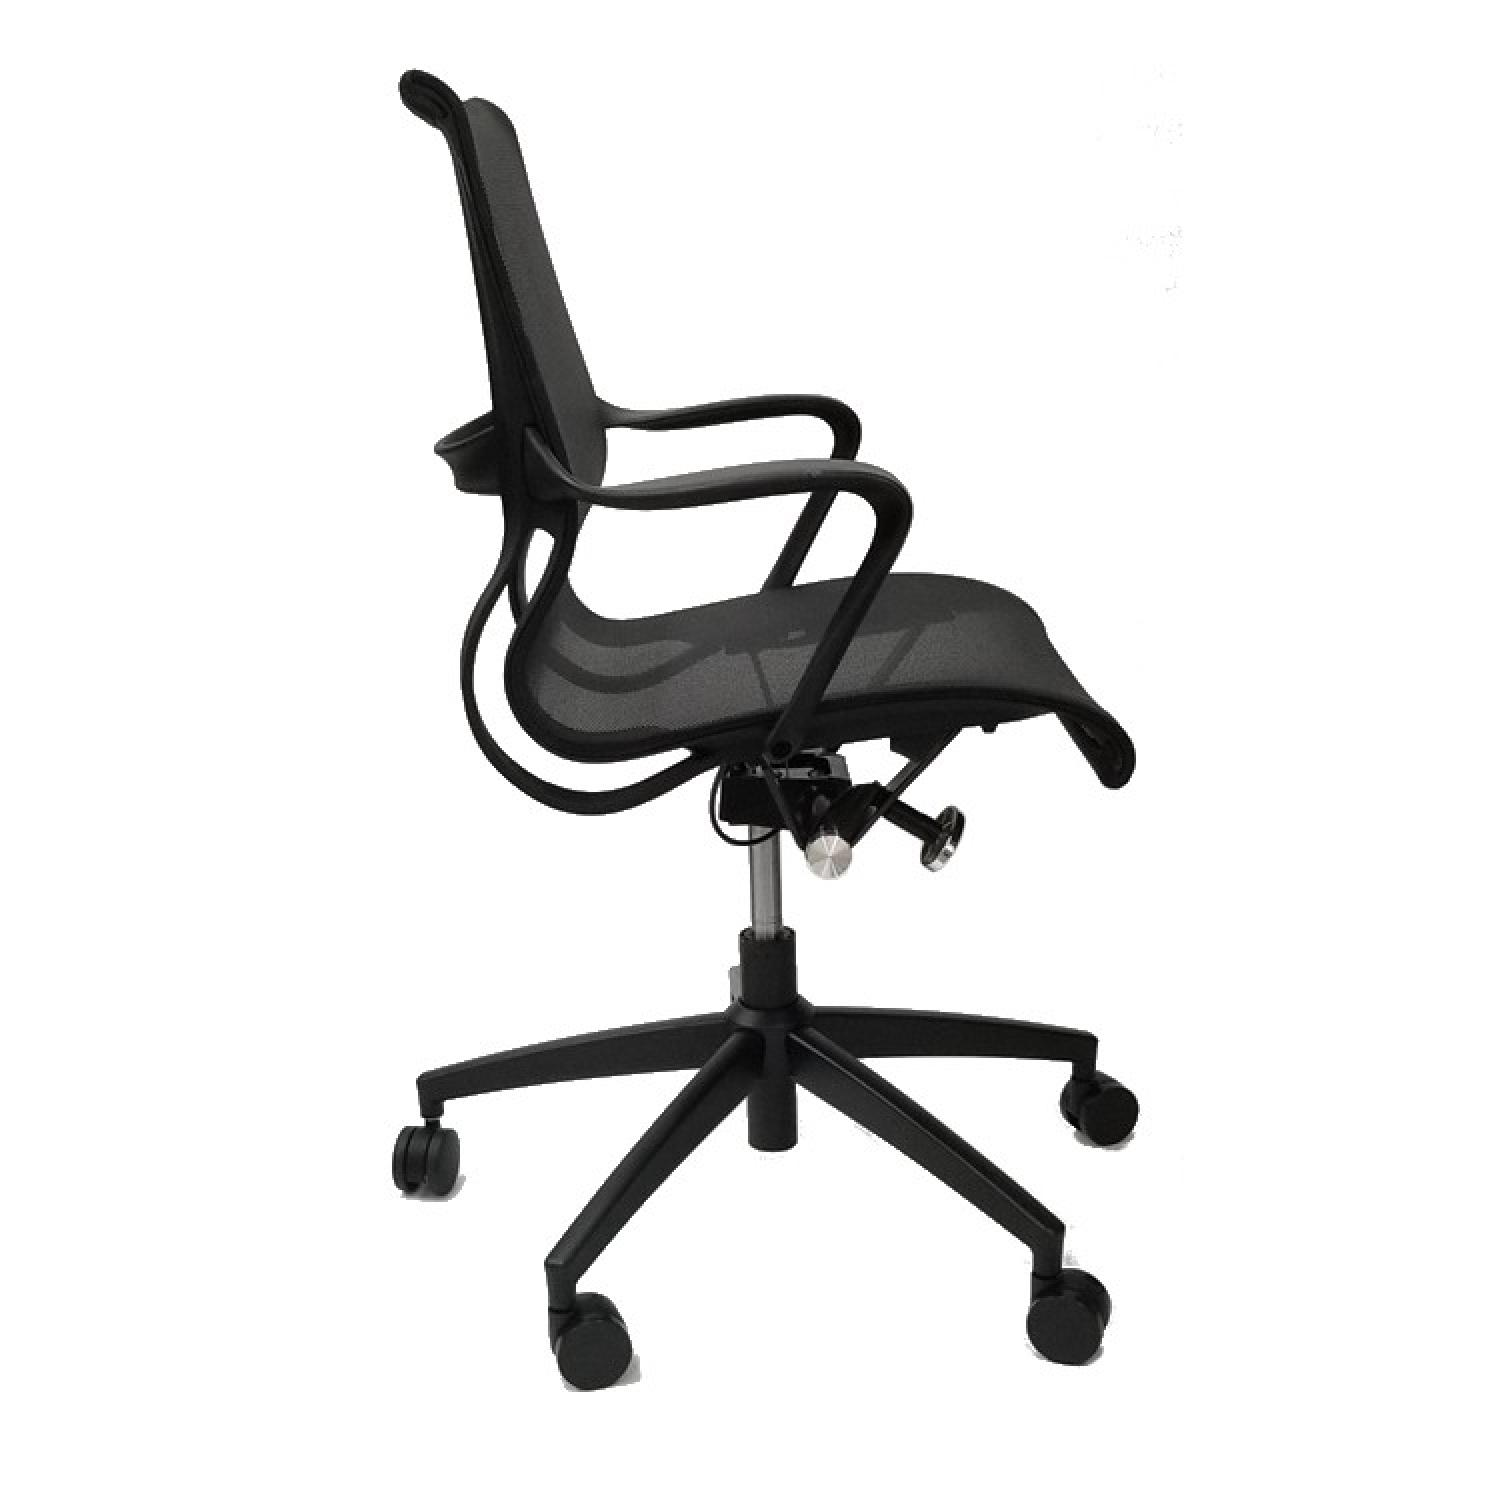 Modern Office Chair w/ Armrests & Black Mesh Fabric - image-2